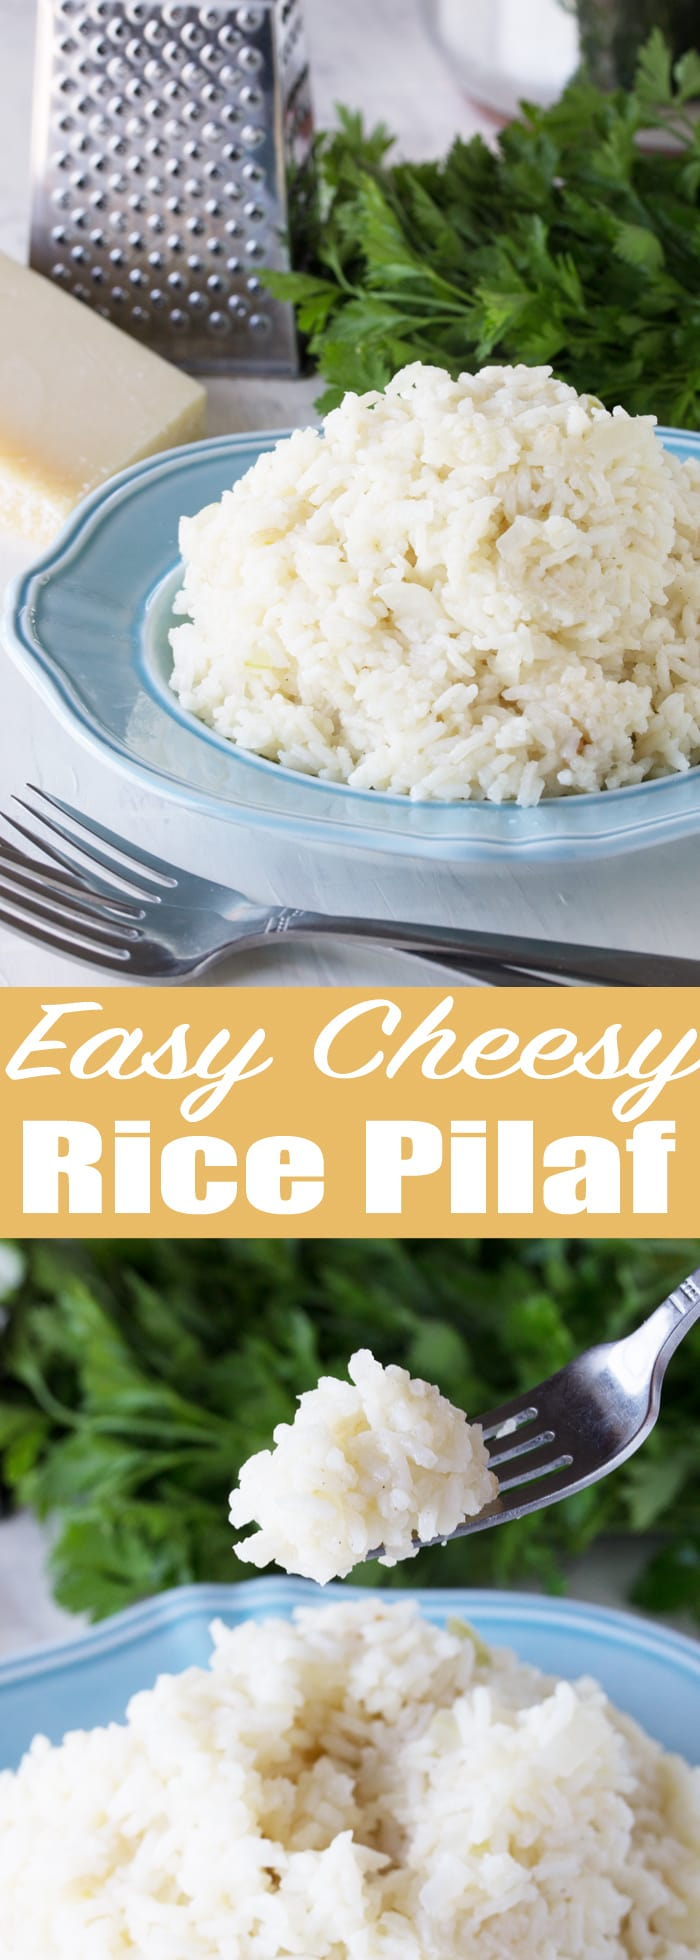 Easy Cheesy Rice Pilaf is a side dish that goes with anything! Toasted rice is cooked in chicken broth and then parmesan cheese is melted in to create a side dish that is sure to please!